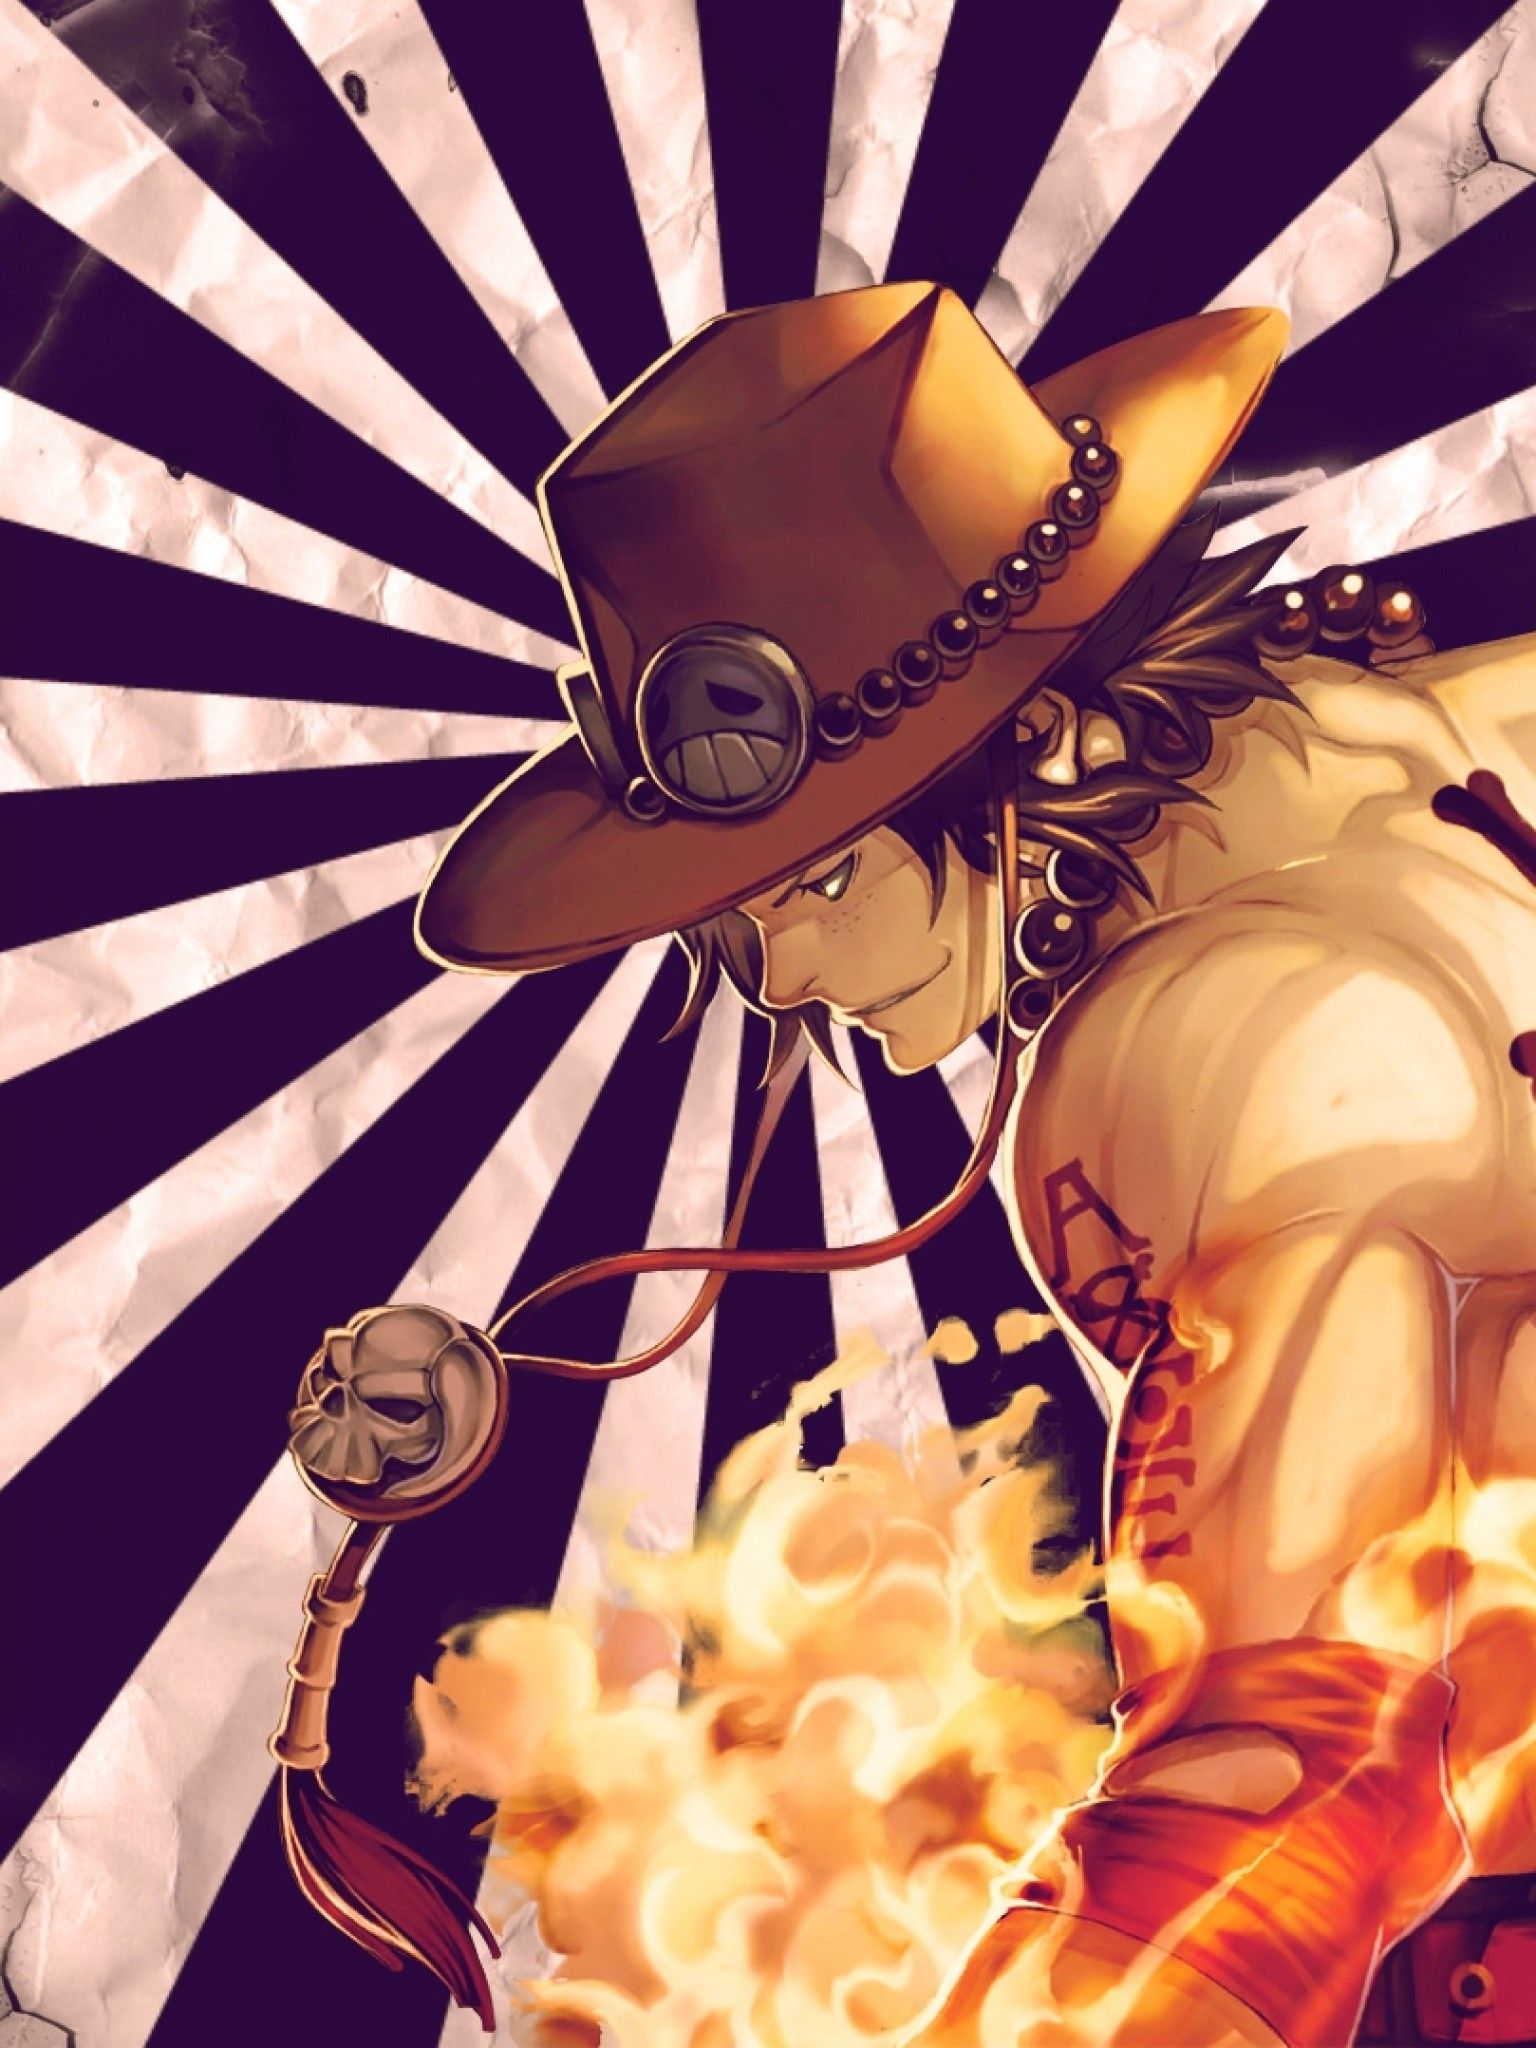 One piece hd wallpaper for android, samsung, iphone, ipad, windows and mac. One Piece iPad Wallpapers - Top Free One Piece iPad ...